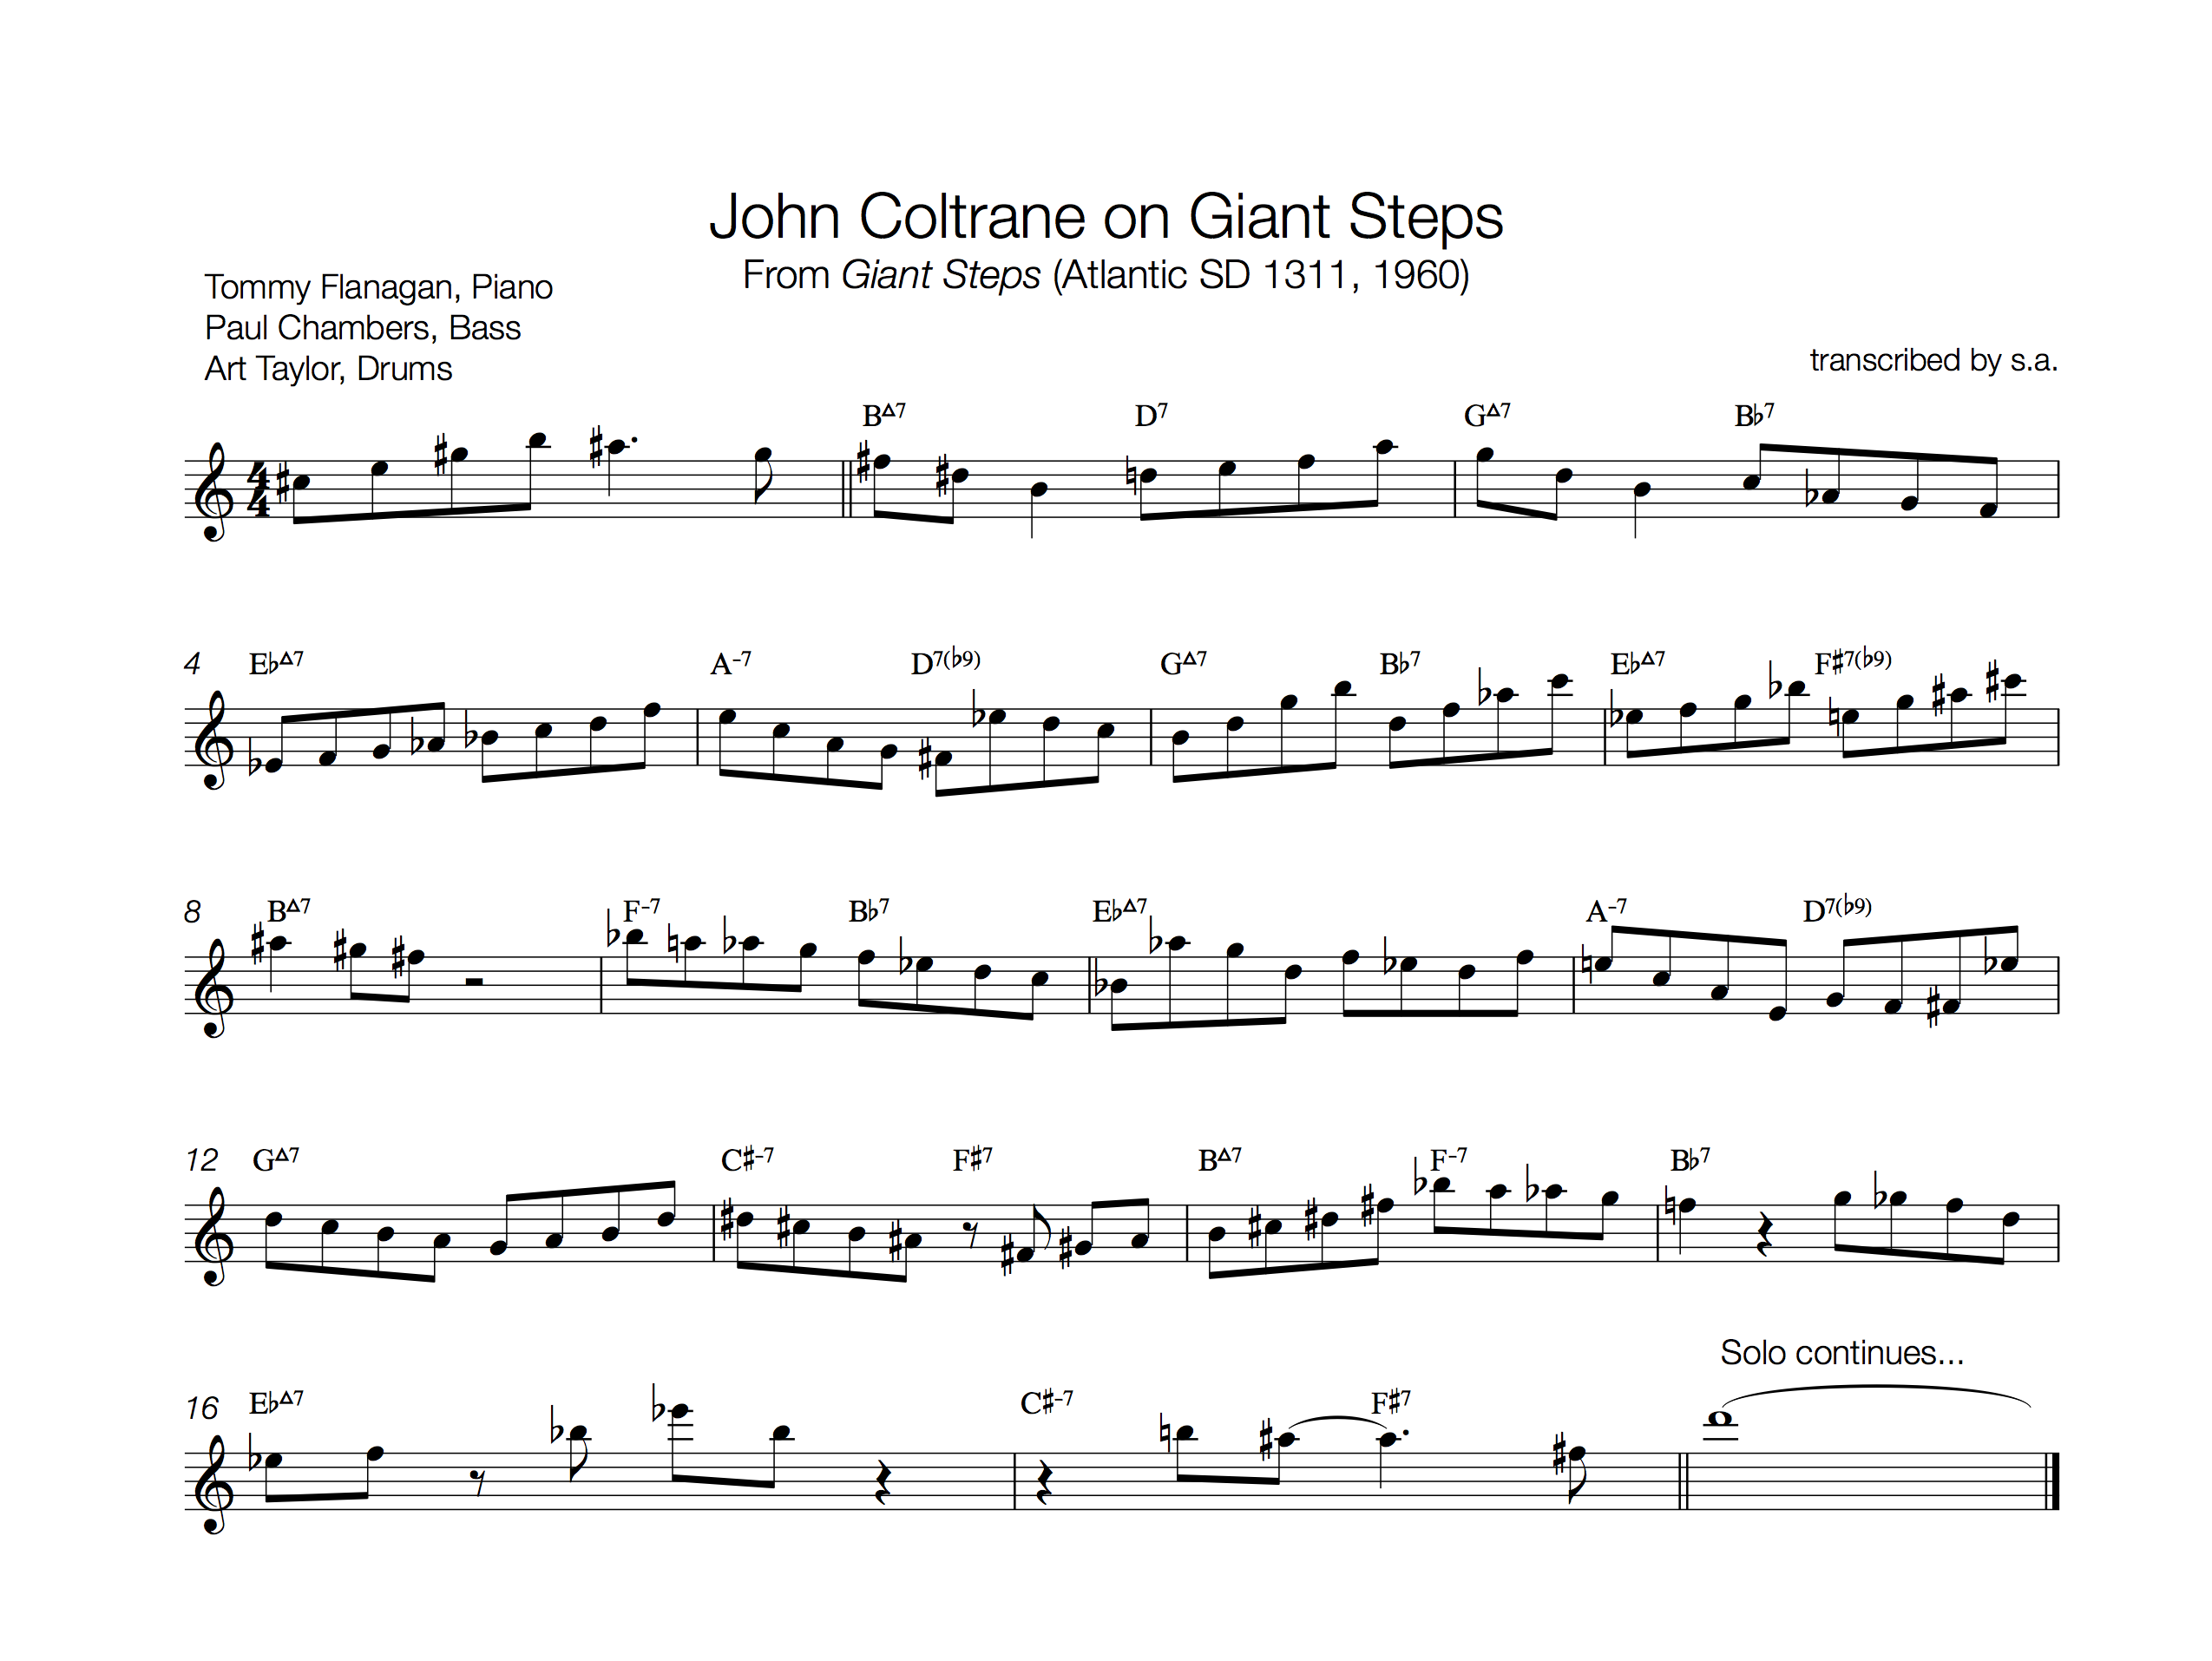 John Coltrane on Giant Steps pt1